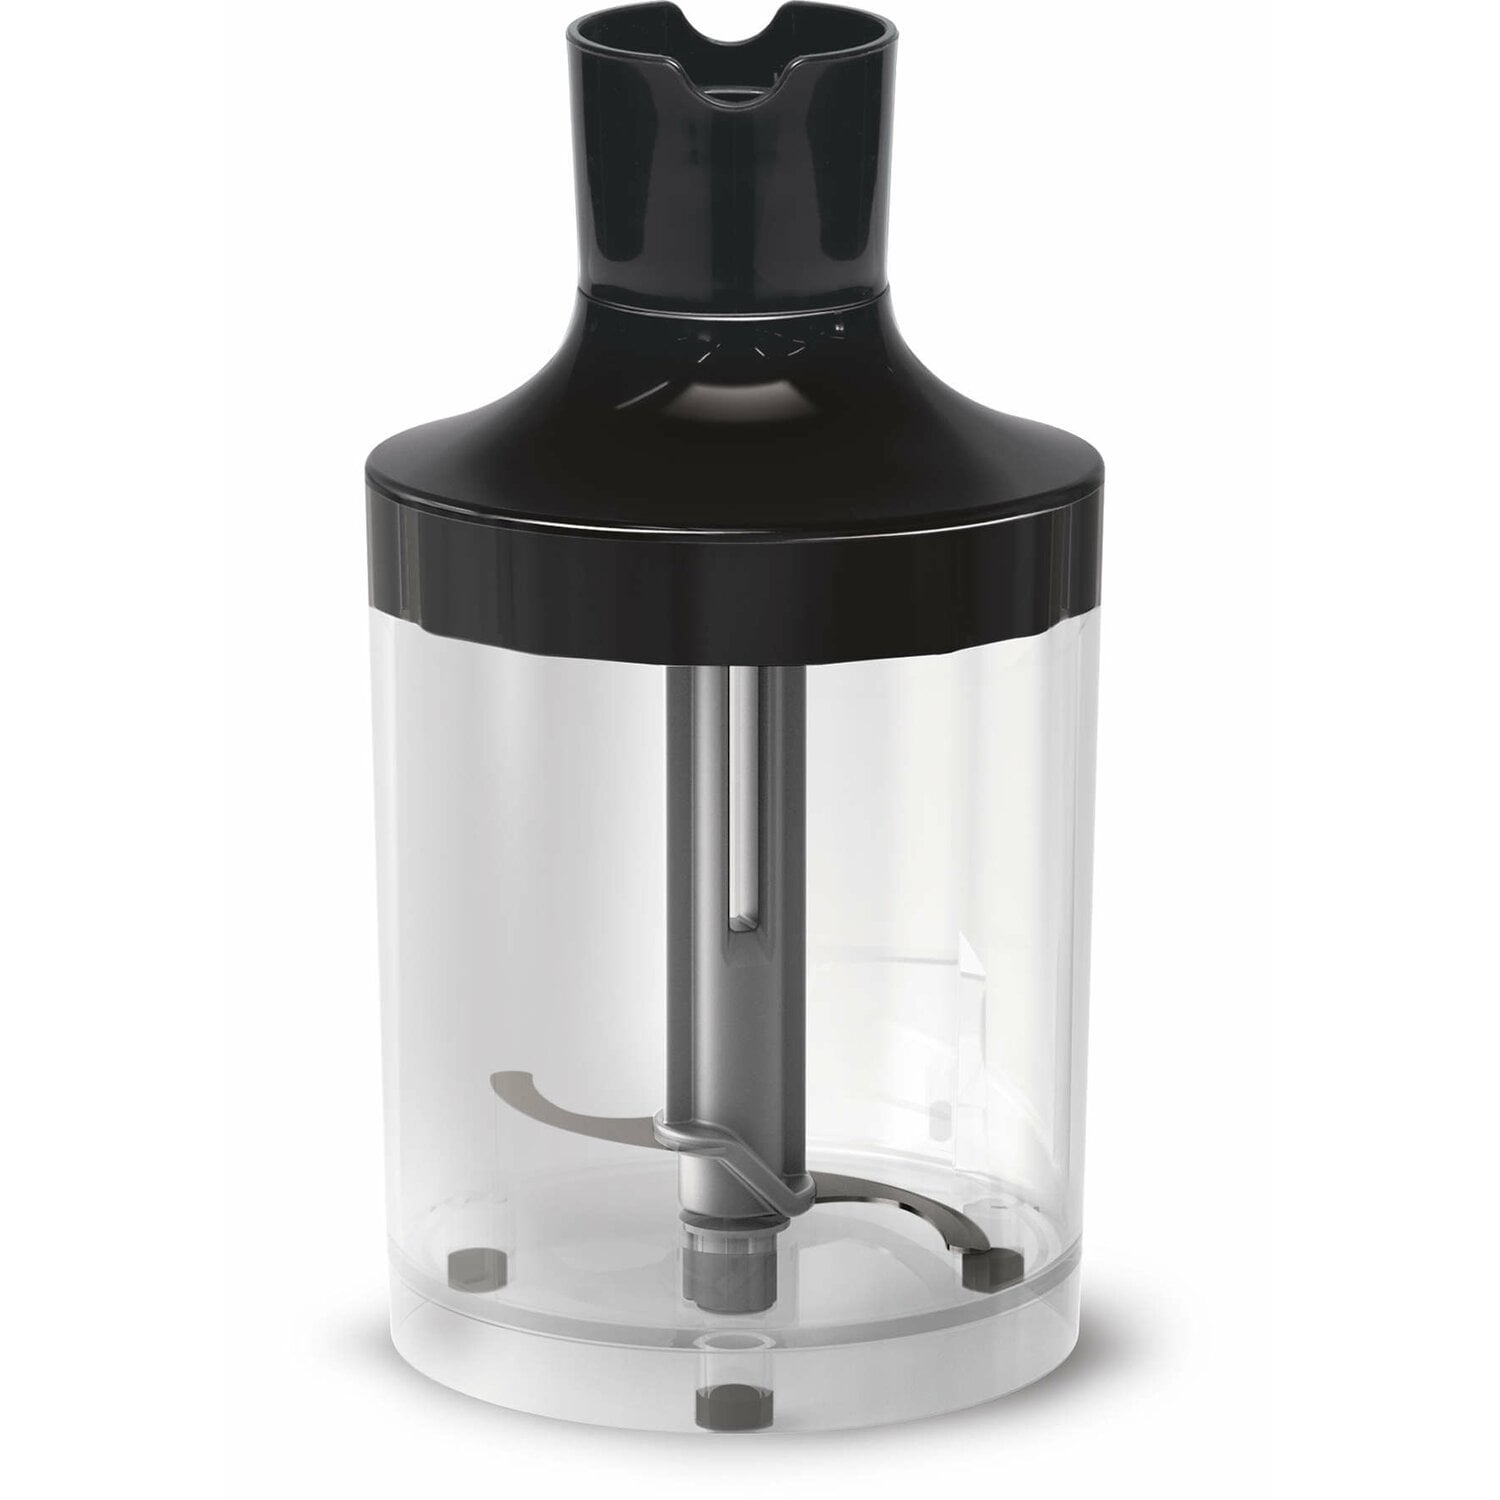 Blender PHILIPS Viva Collection ProMix 700W HR2633/90